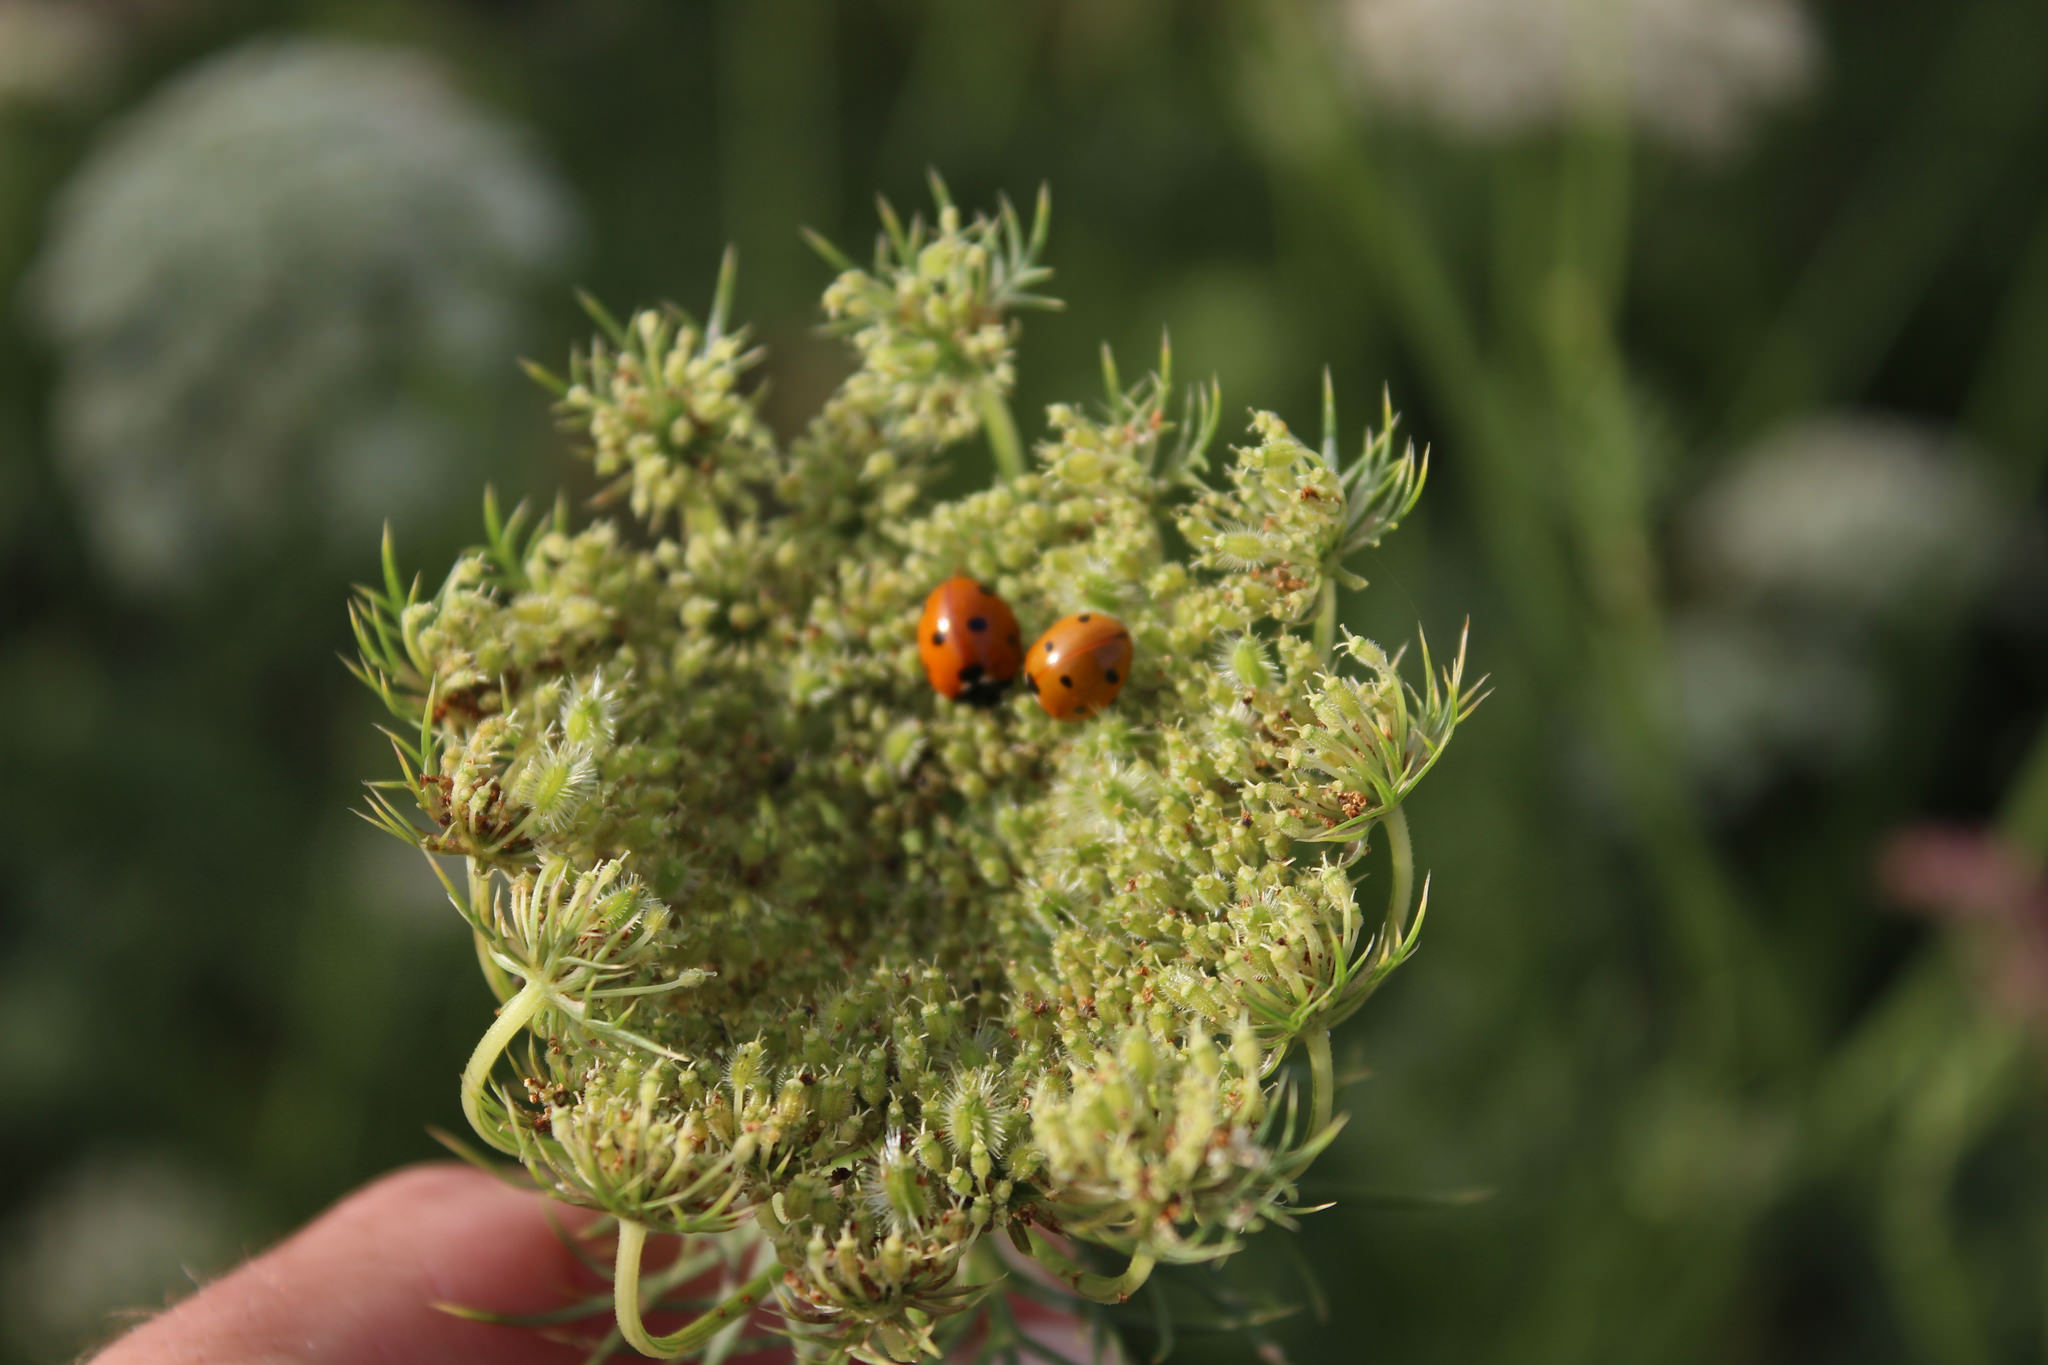 carrot umbel with ladybugs